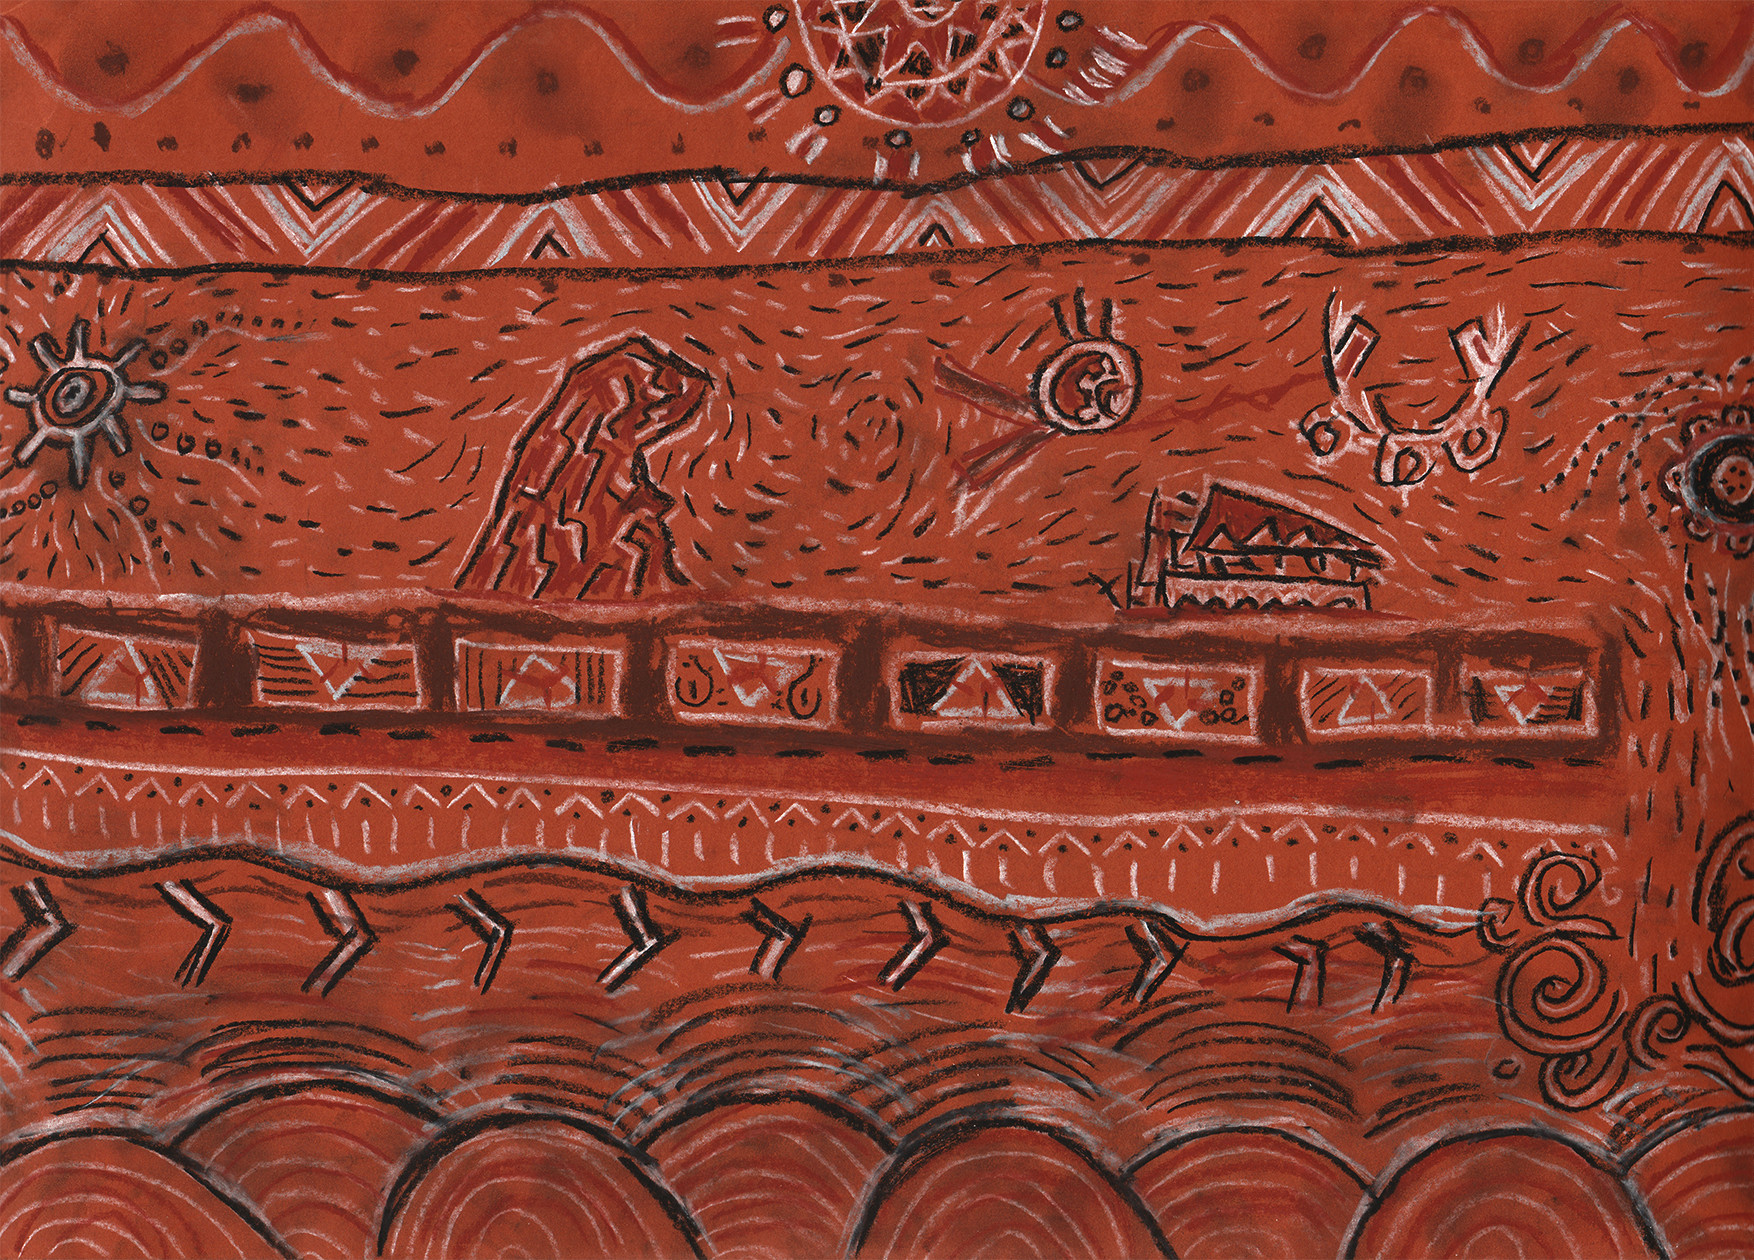 Final design of the murals drawn with crayons on brown thick paper